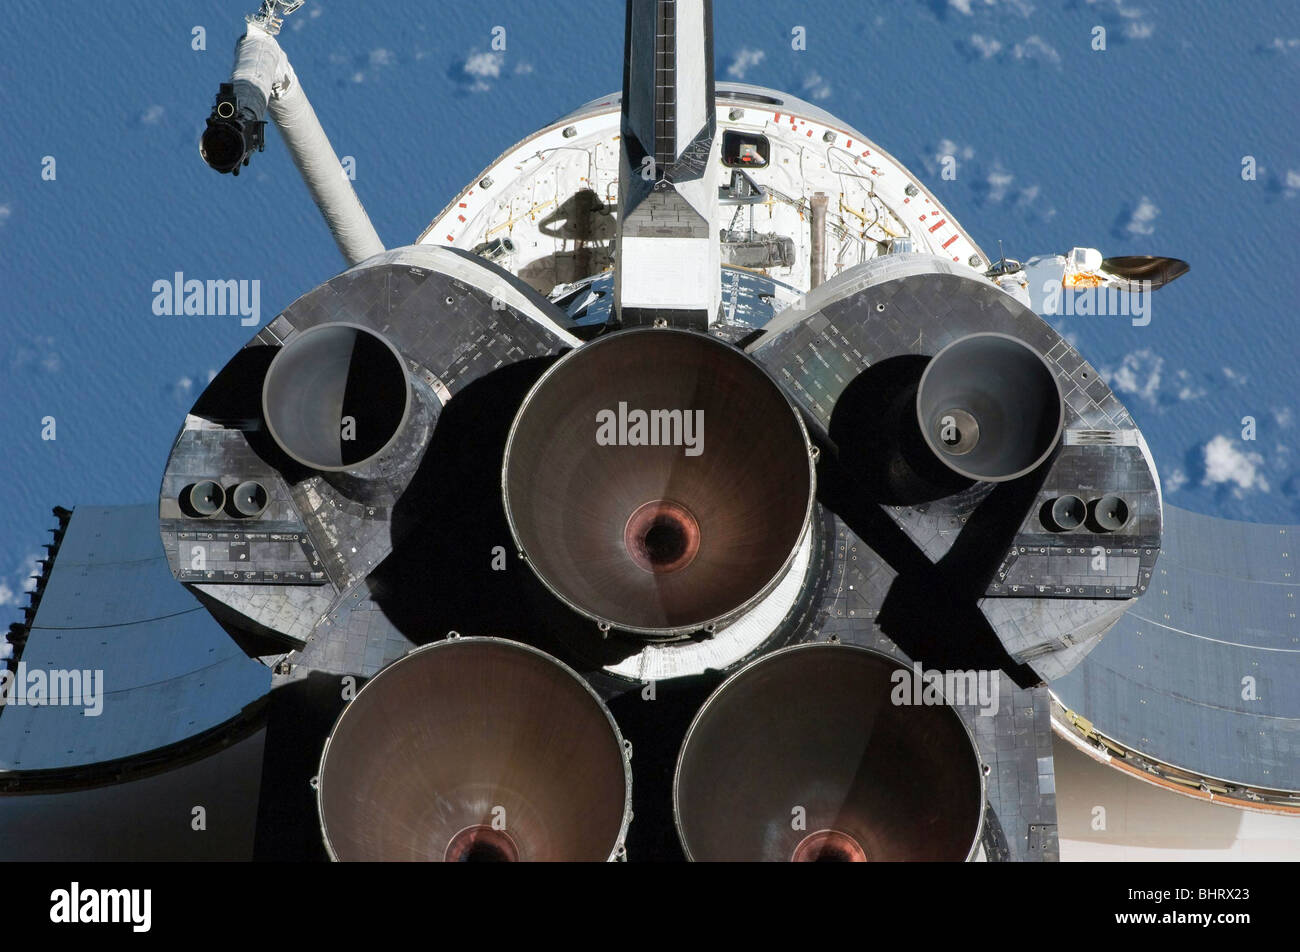 February 9, 2010 - View of the three main engines of Space Shuttle Endeavour's aft section. - Stock Image